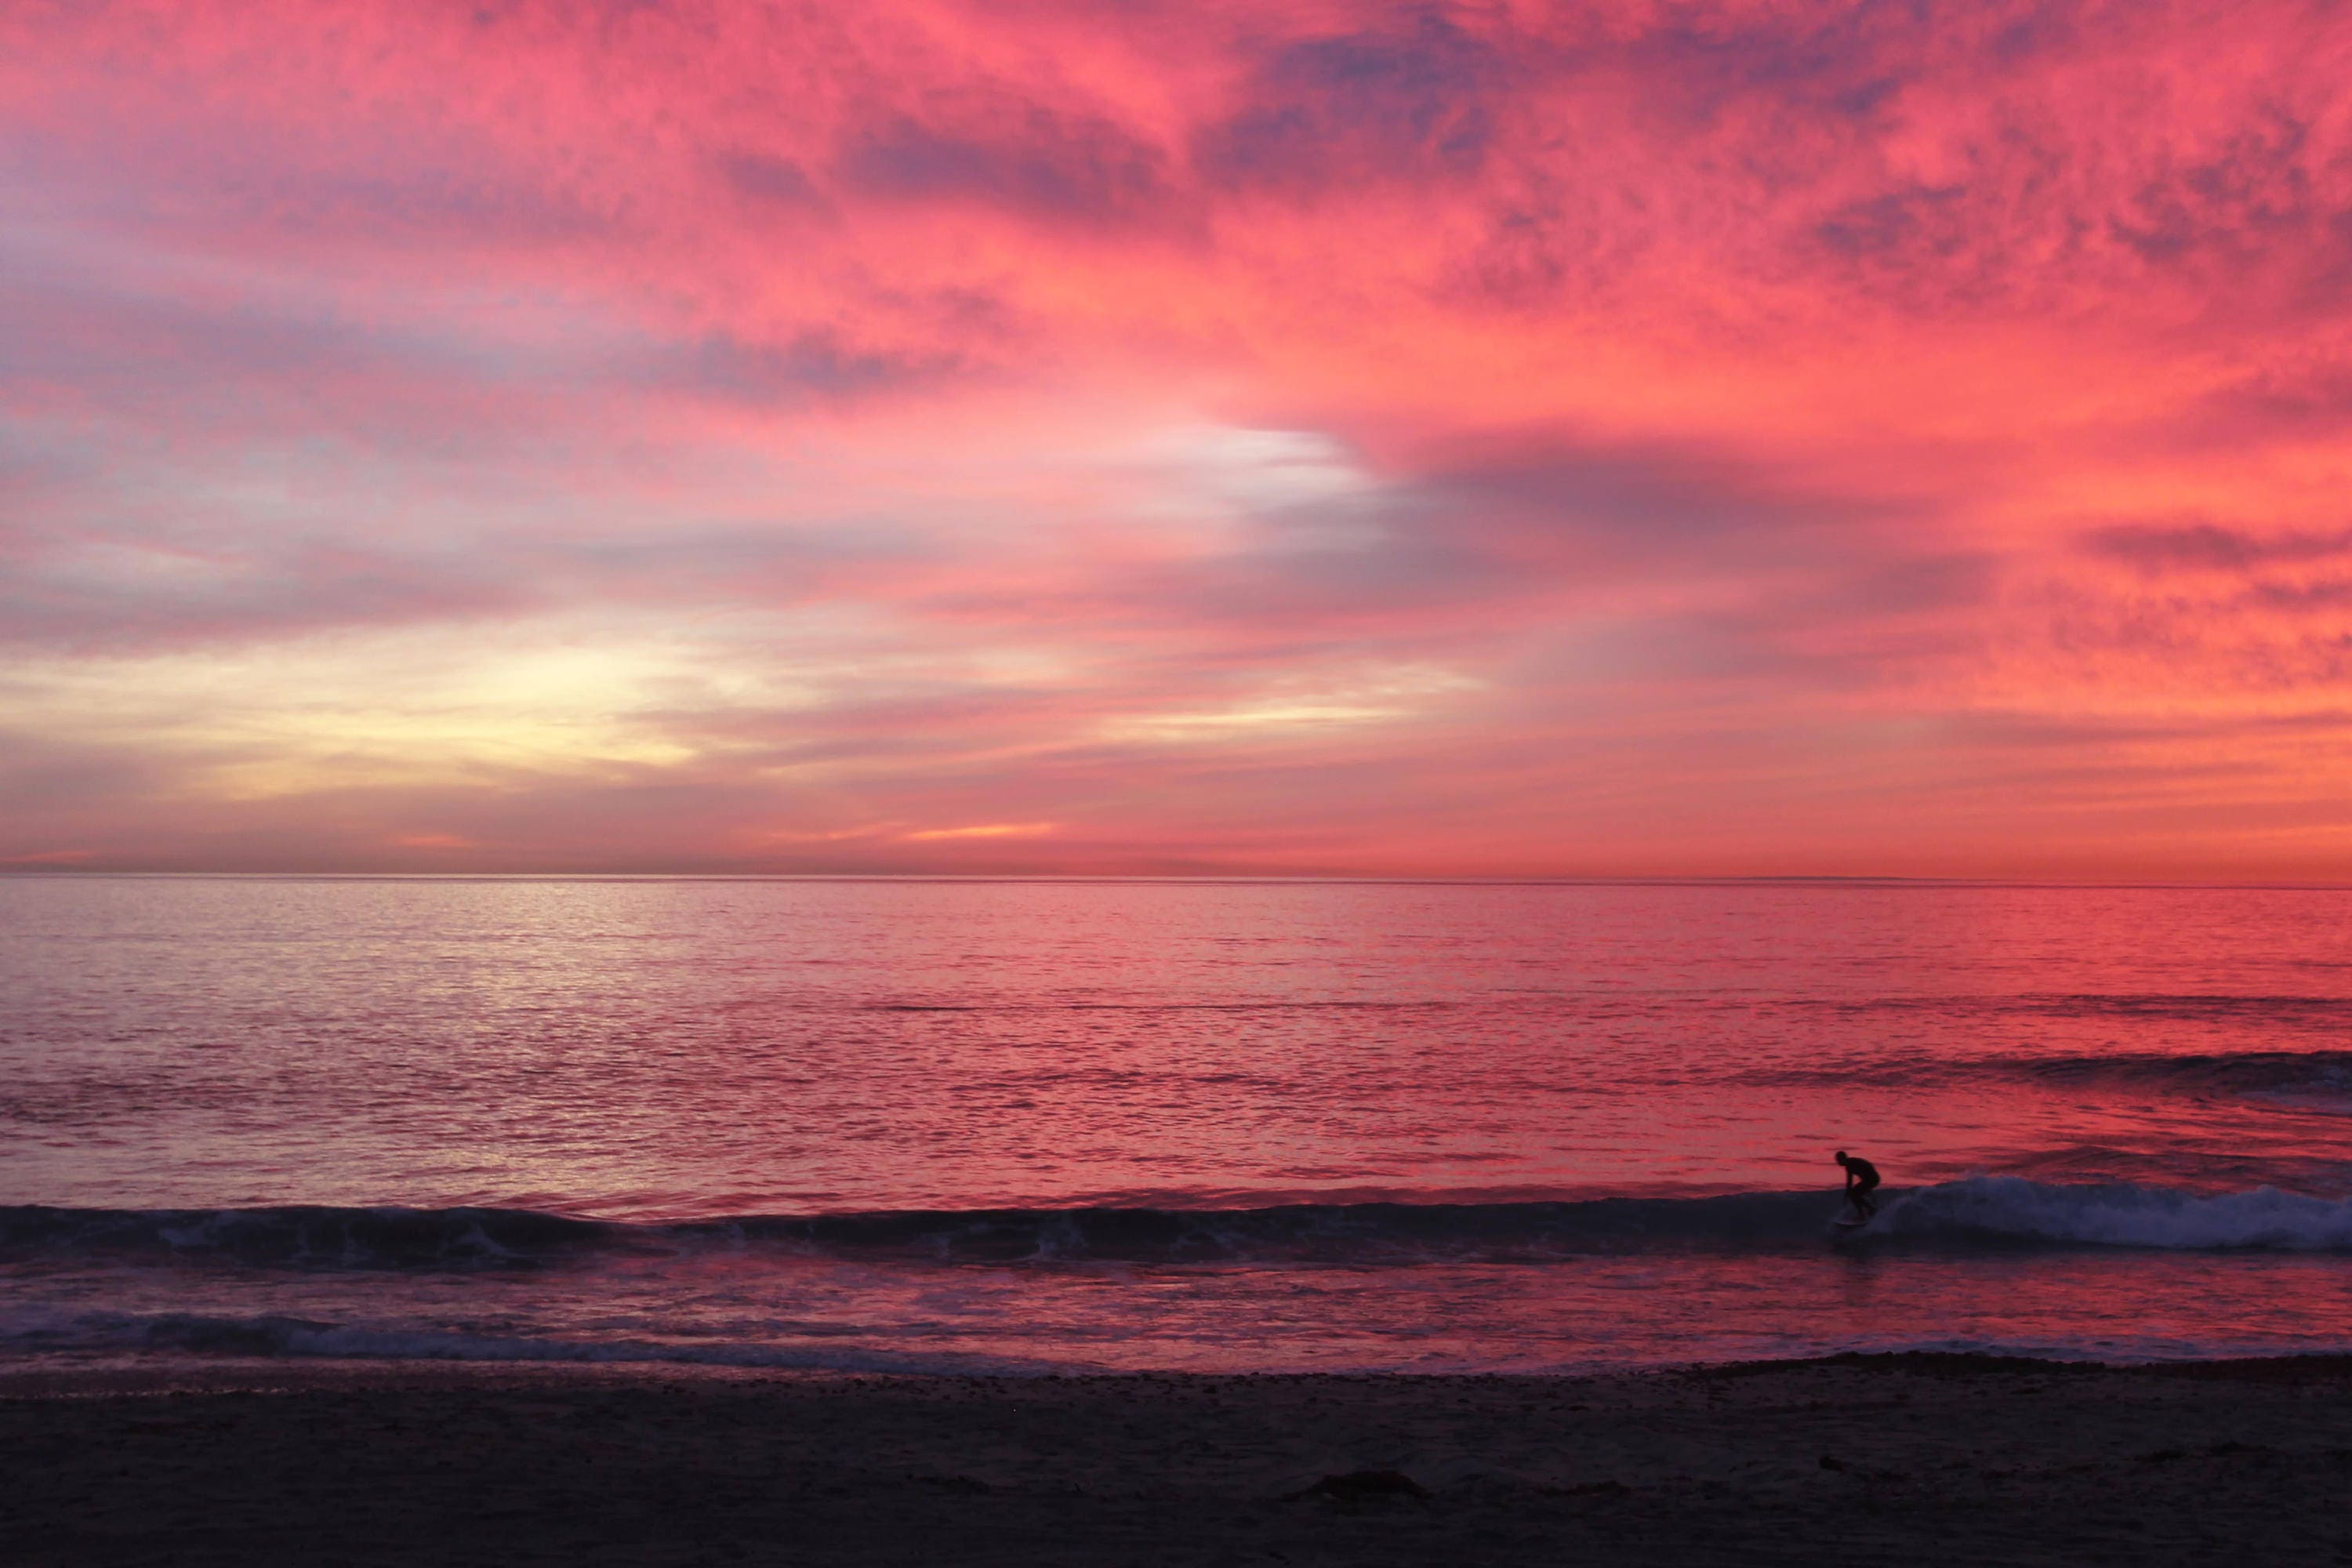 Surfers Delight Sunset Pink Sky Beach Carlsbad San | Etsy